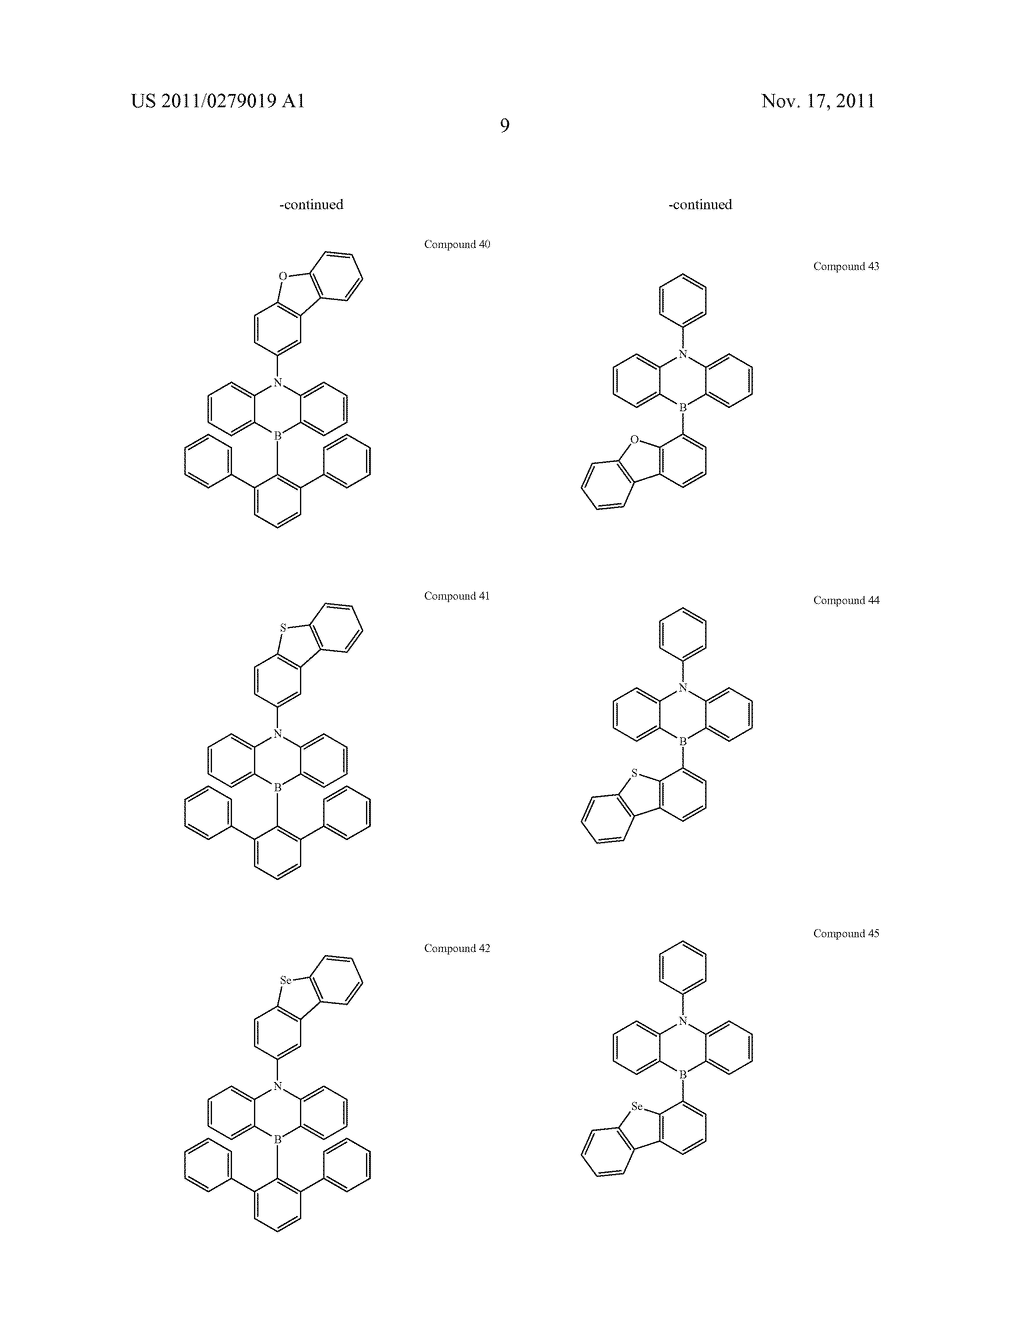 AZABORININE COMPOUNDS AS HOST MATERIALS AND DOPANTS FOR PHOLEDS - diagram, schematic, and image 16